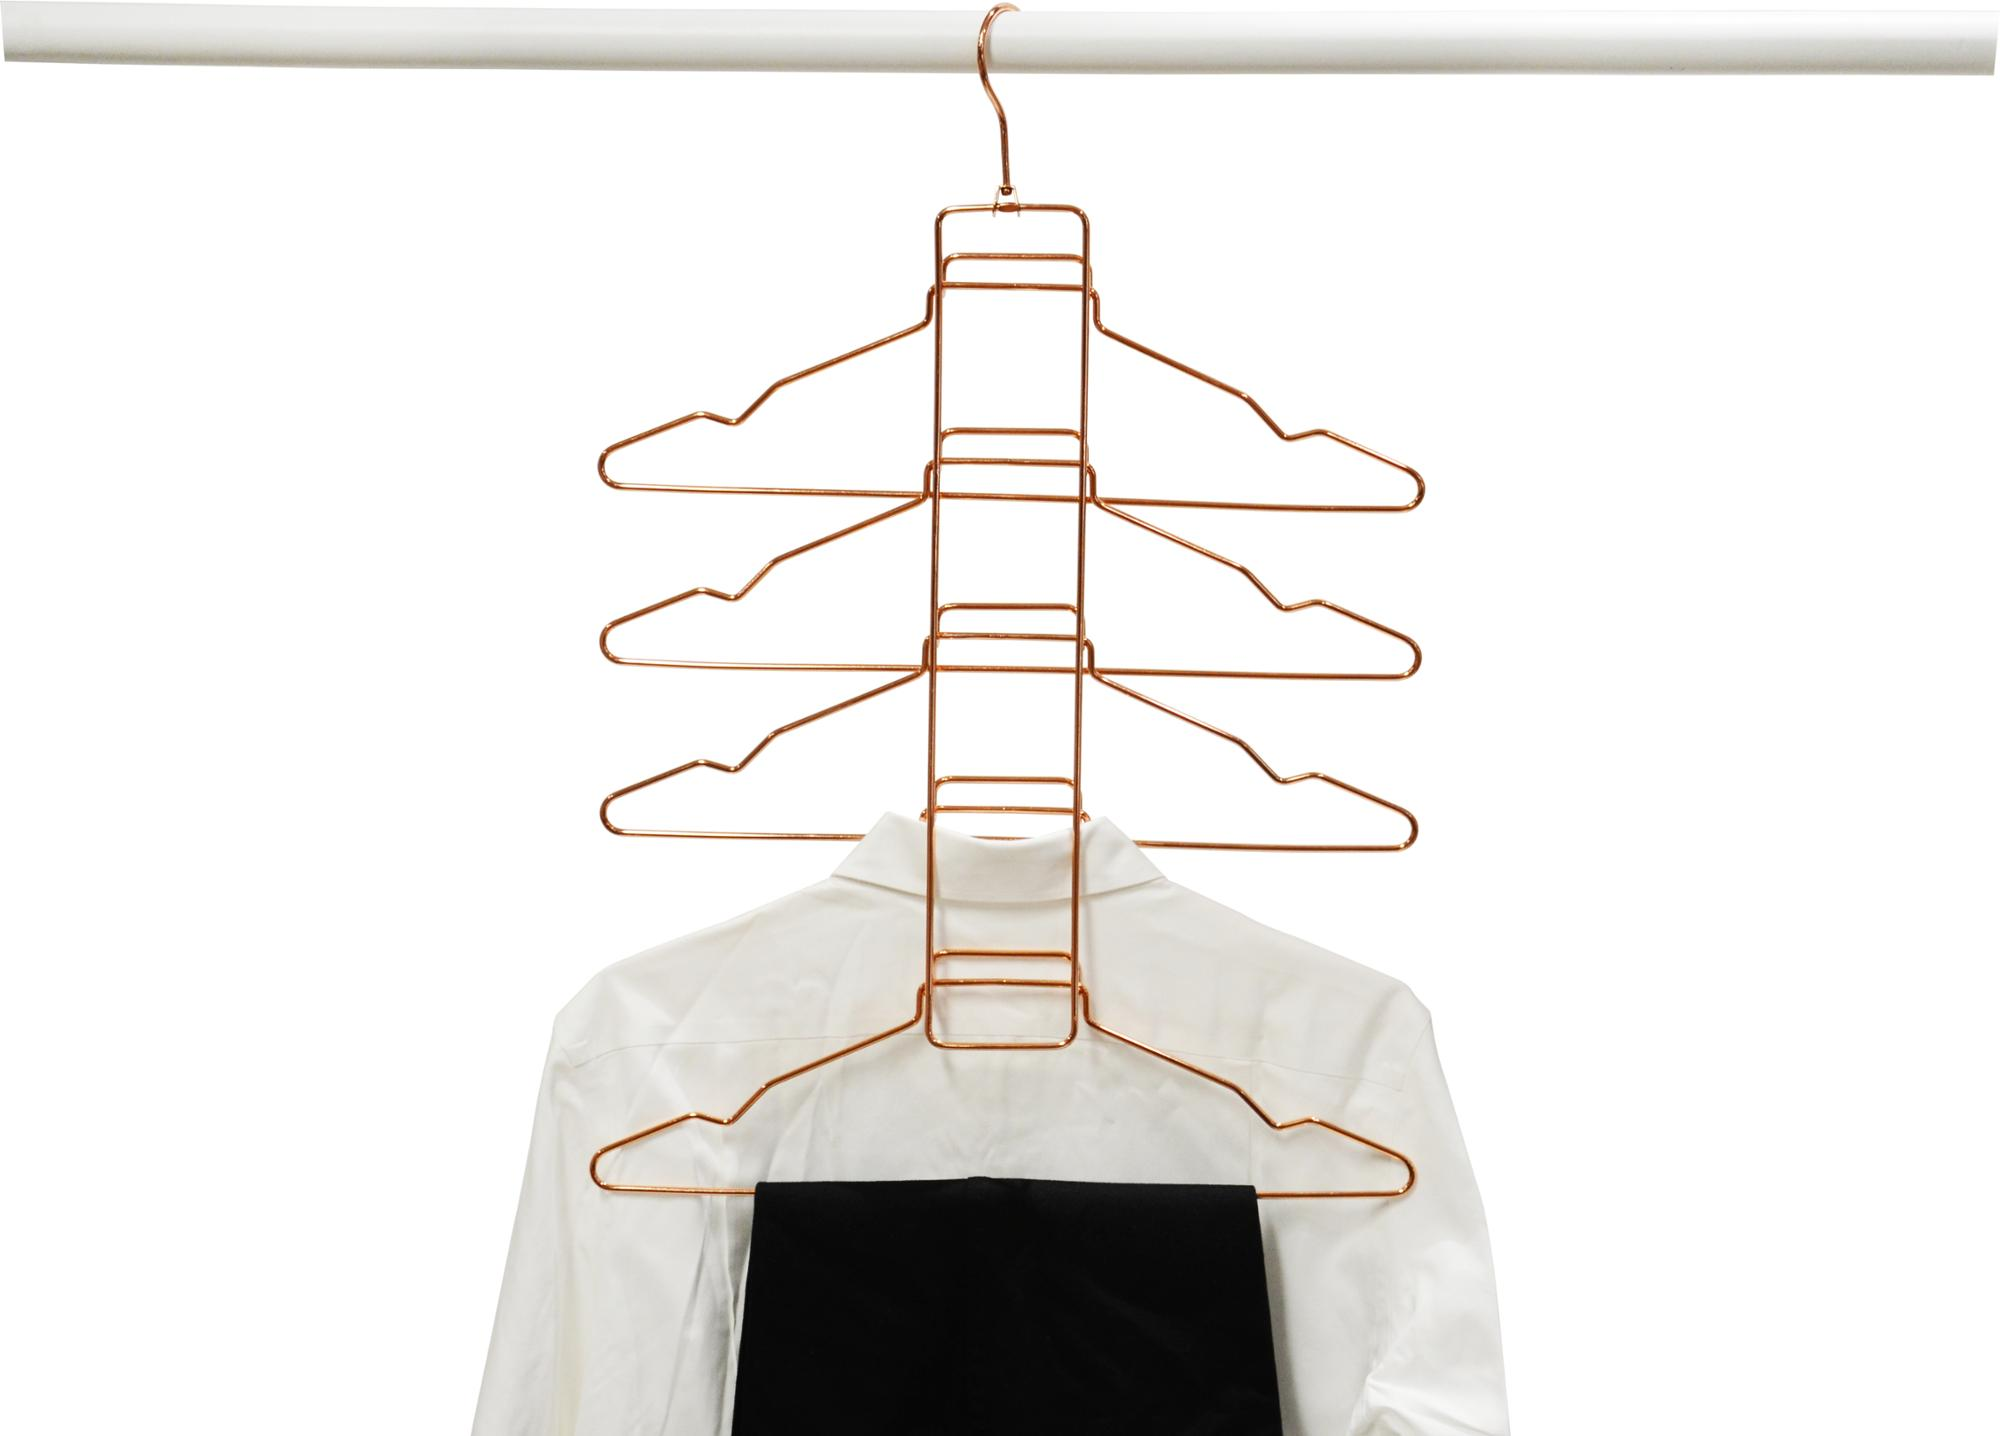 YIKAI magical metal space saving hanger